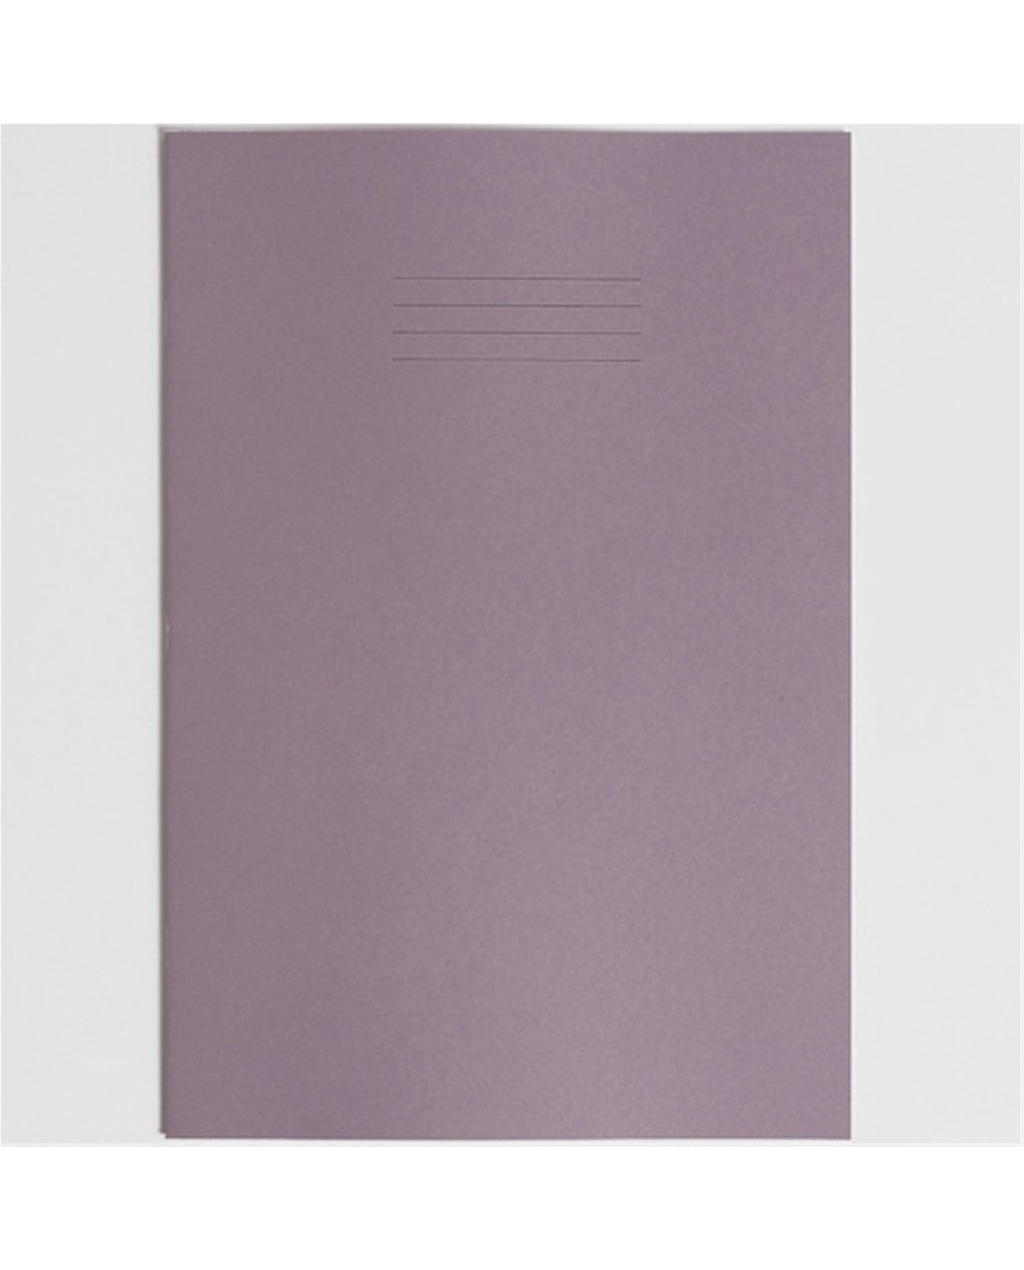 Exercise Book A4+ size (330 x 250mm) Purple Cover 7mm Squares 40 Pages